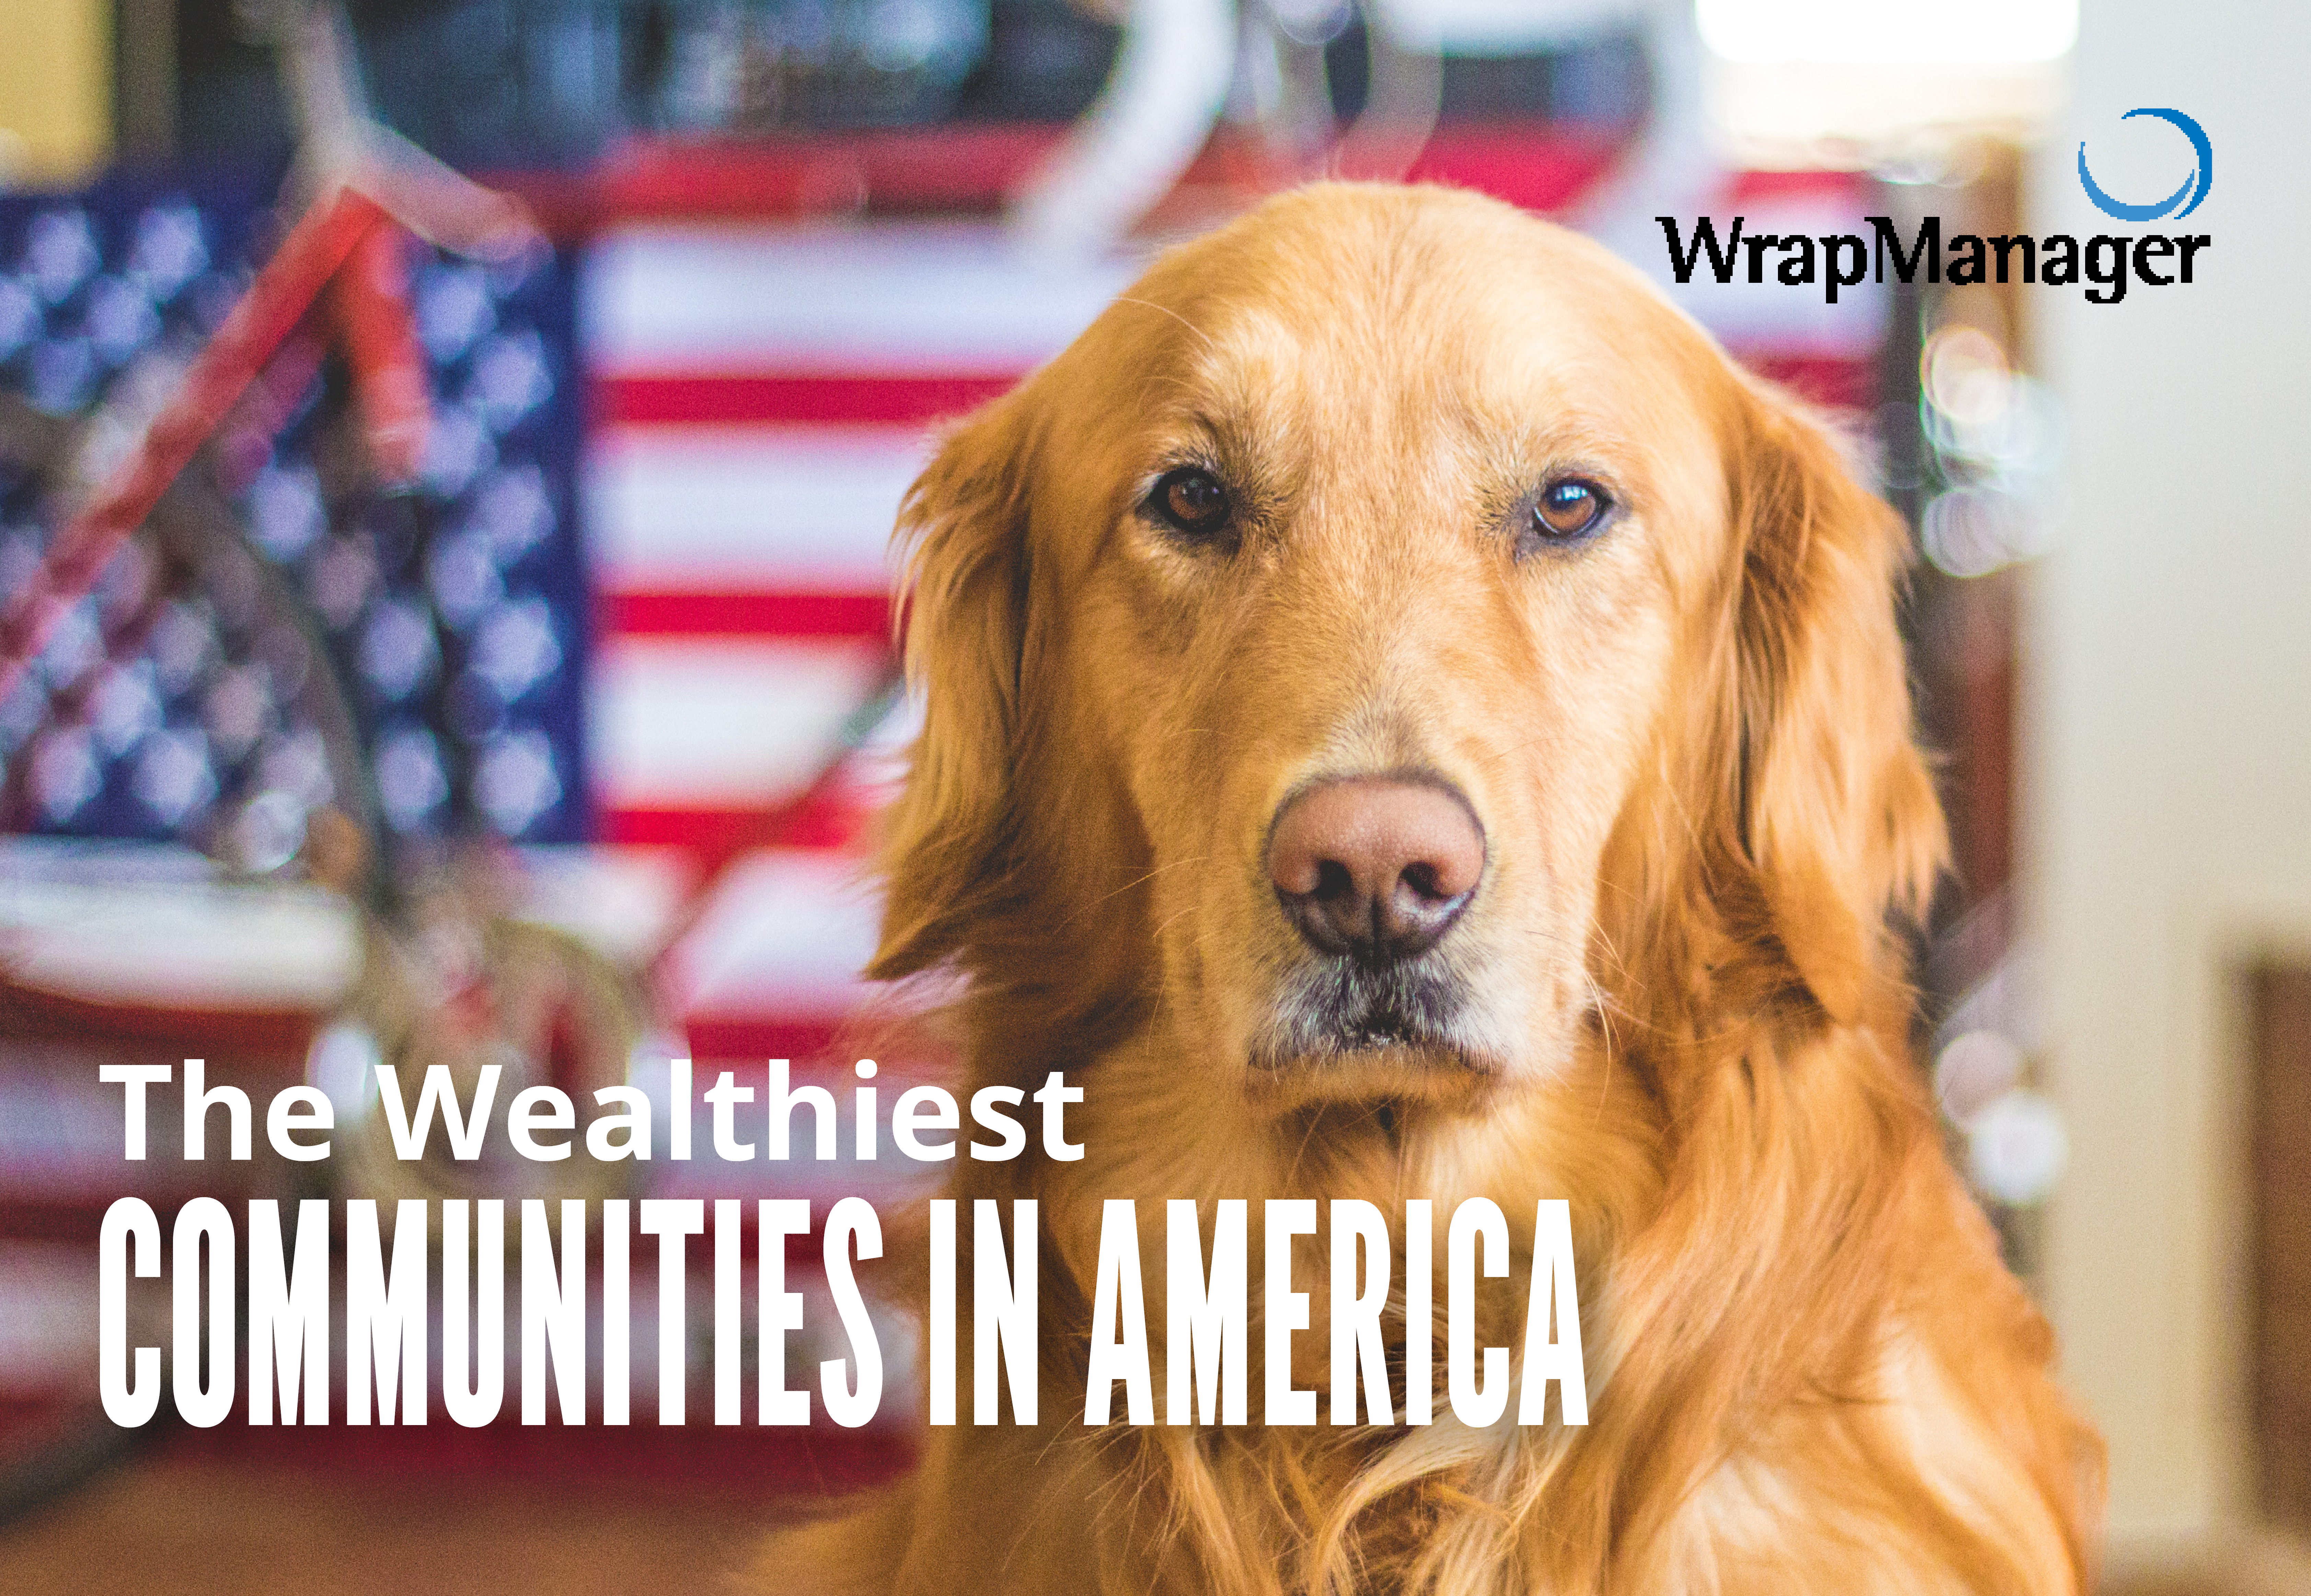 Do You Live in One of the Wealthiest Parts of the Country?